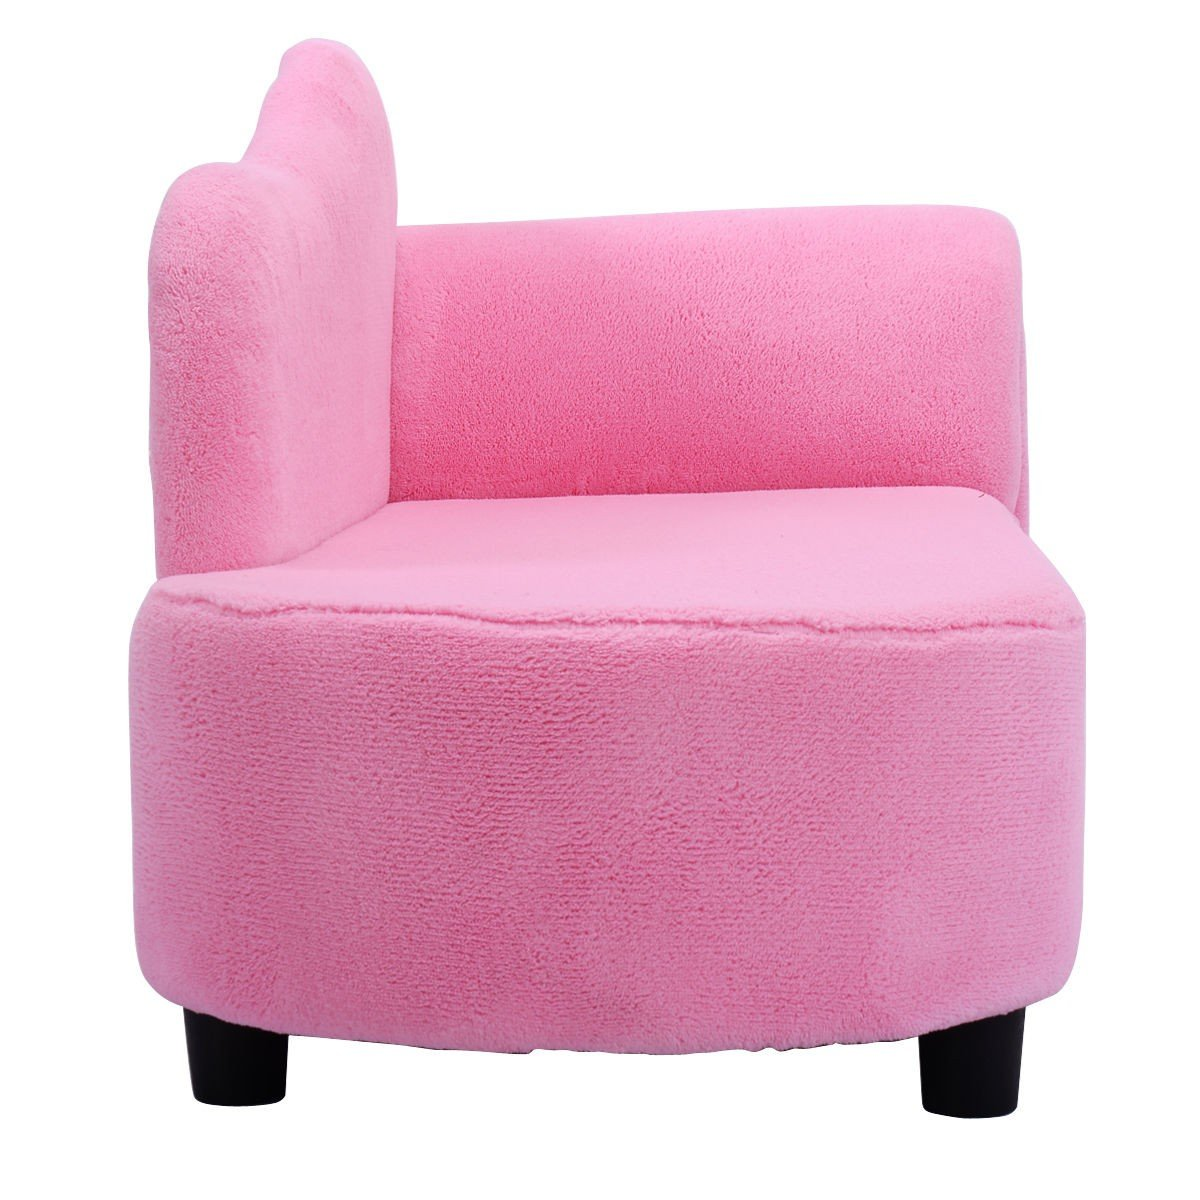 Superb Amazon Com Coral Fleece Armrest Chair Kids Sofa Furniture Gmtry Best Dining Table And Chair Ideas Images Gmtryco